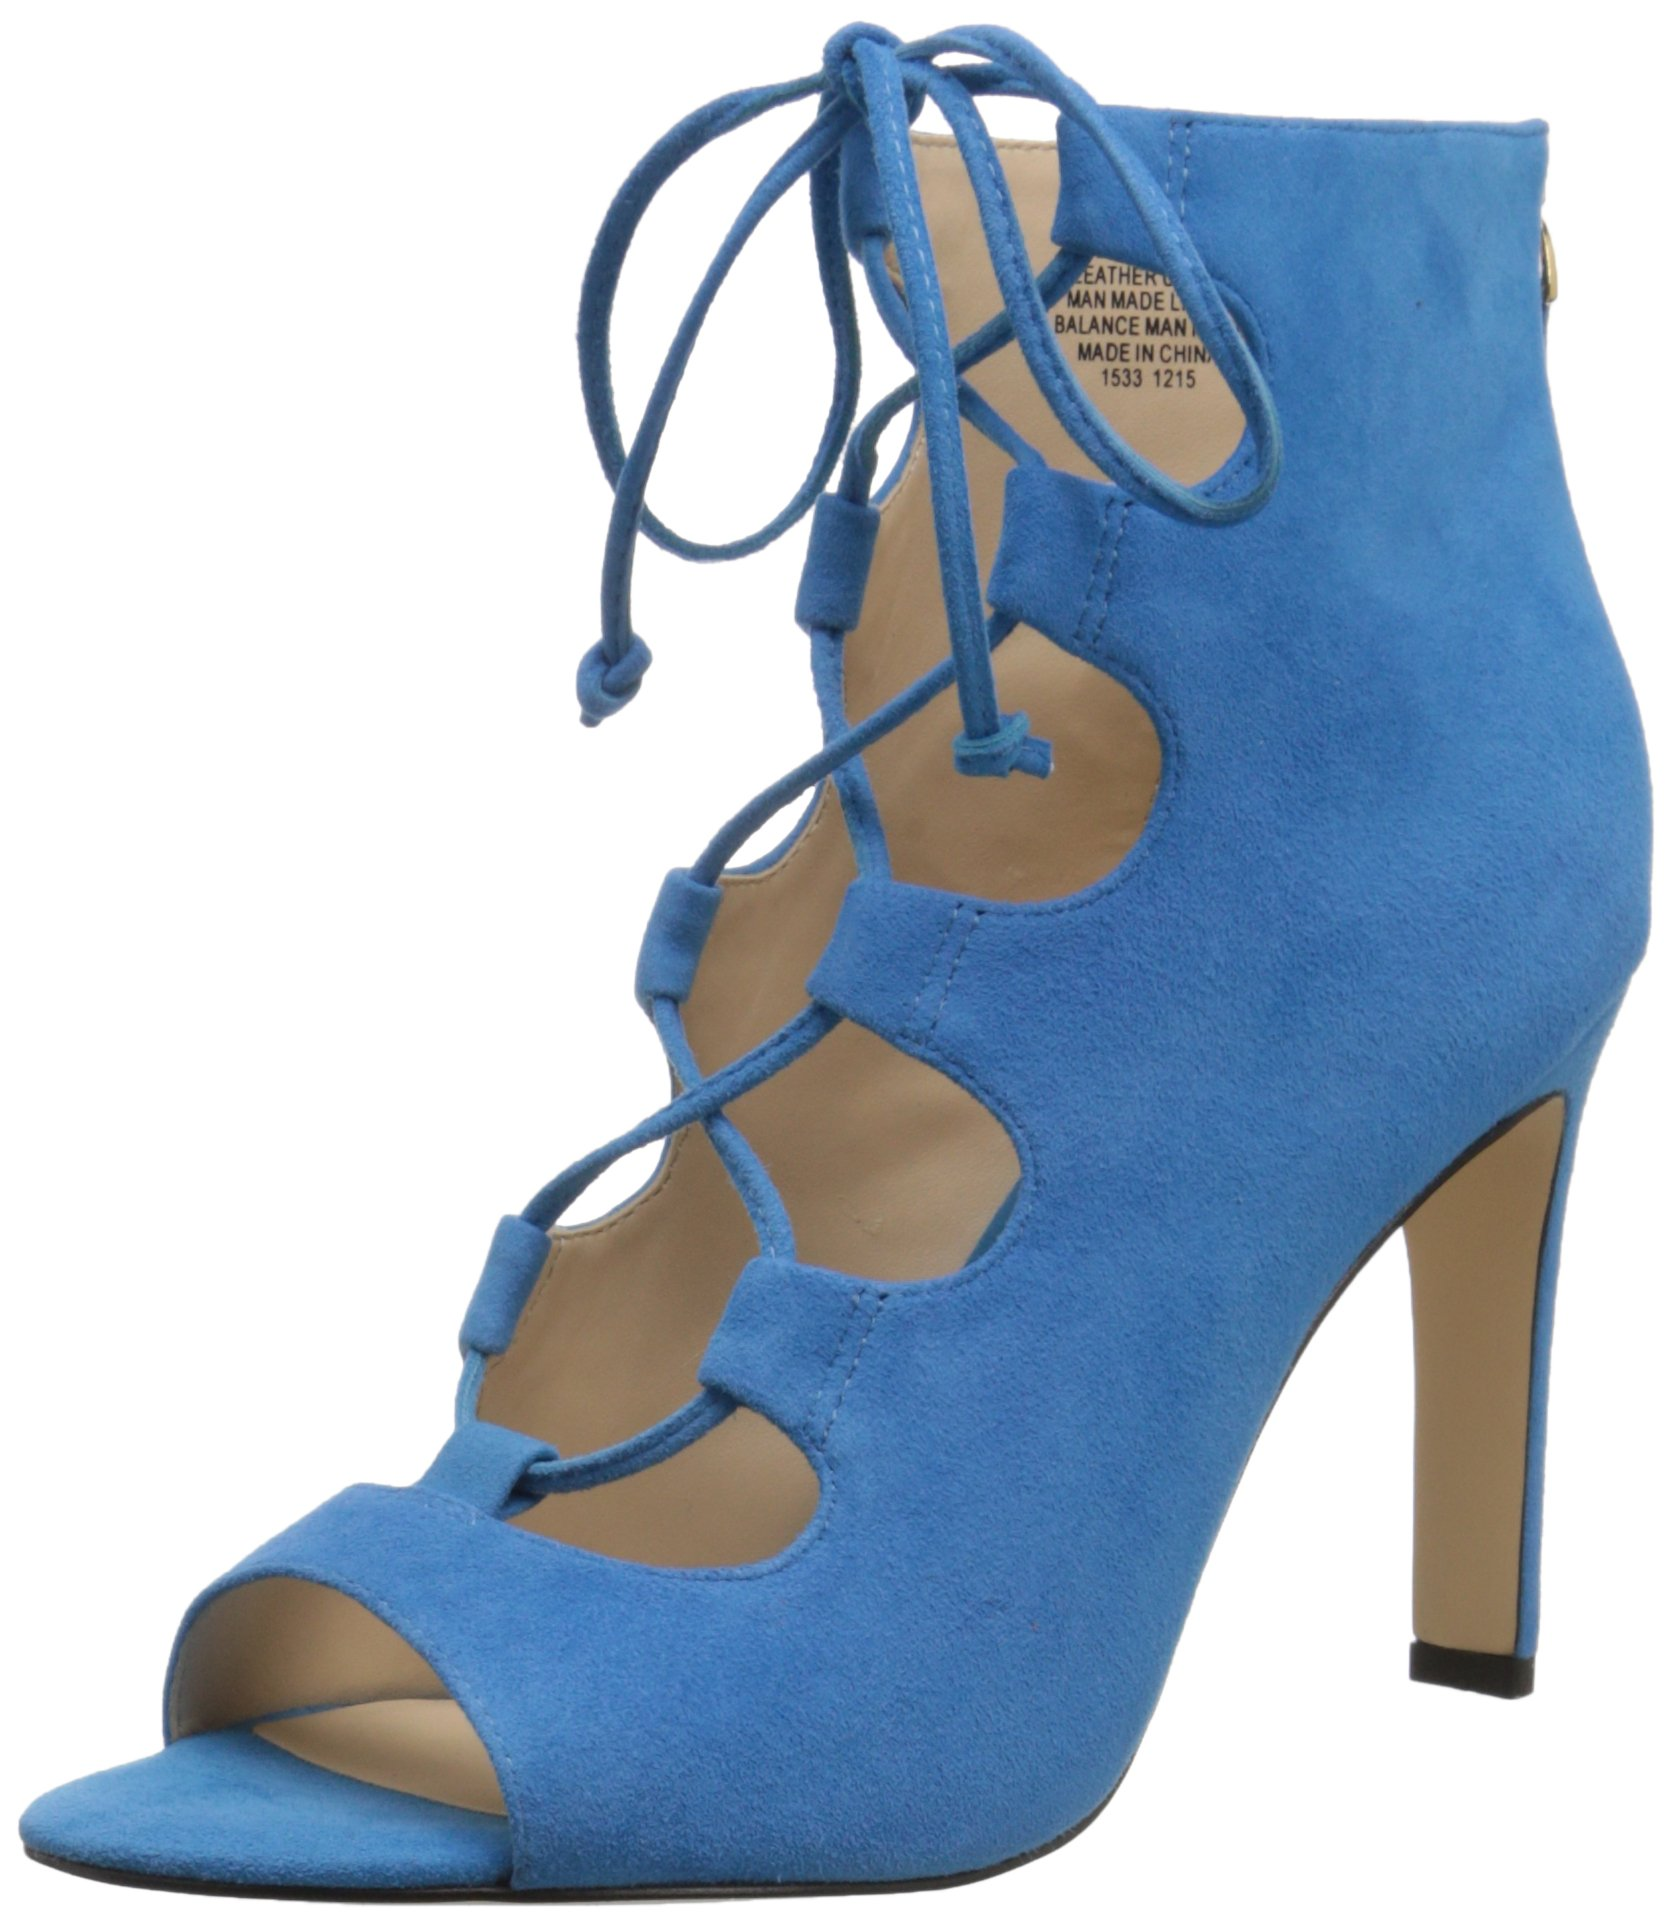 Nine West Women's Unfrgetabl Suede Dress Pump, Turquoise Suede, 5.5 M US by Nine West